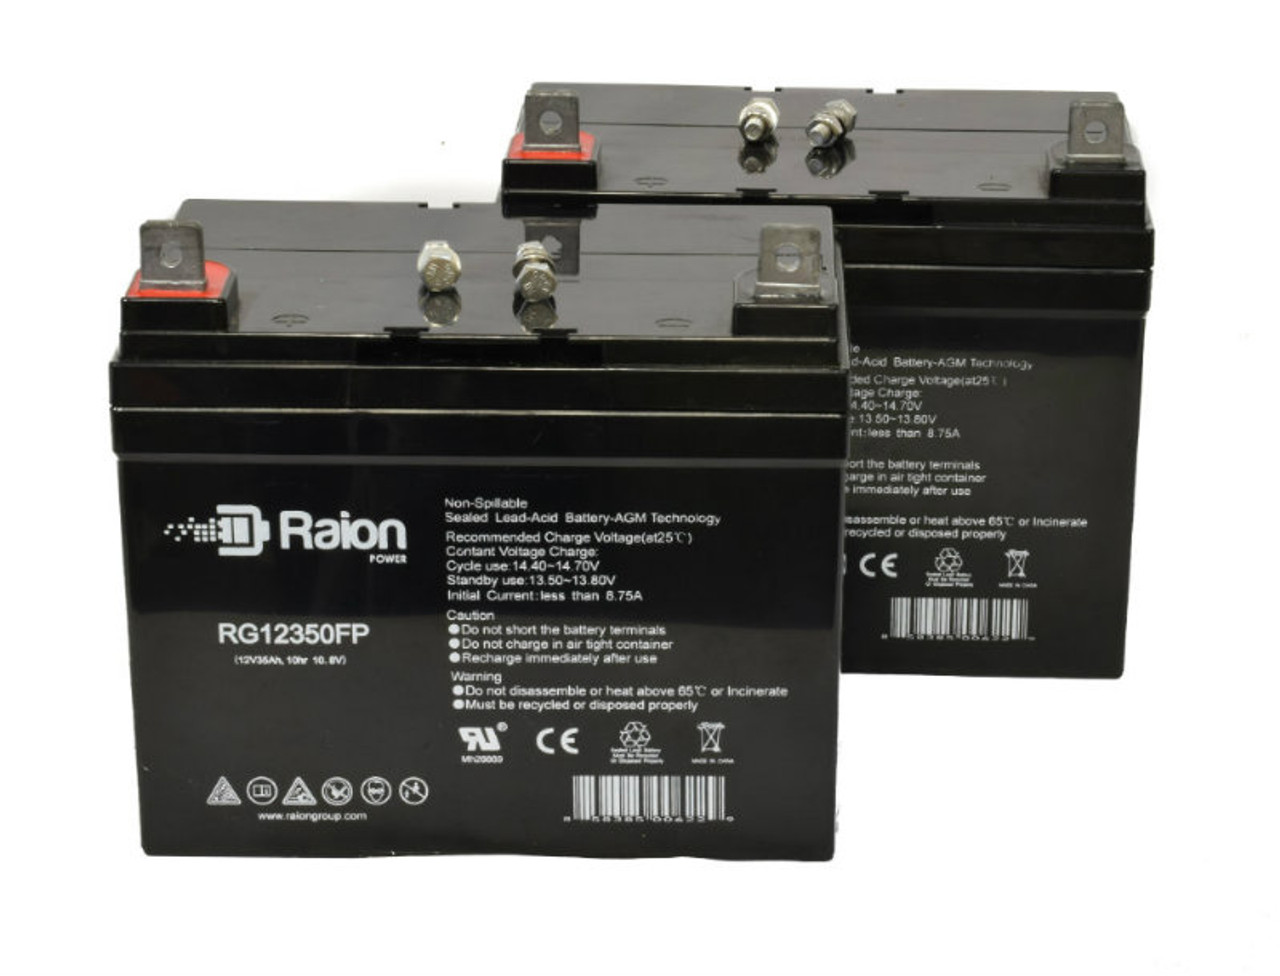 Raion Power RG12350FP Replacement Fire Alarm Control Panel Battery For Ademco PWPS12330 (2 Pack)